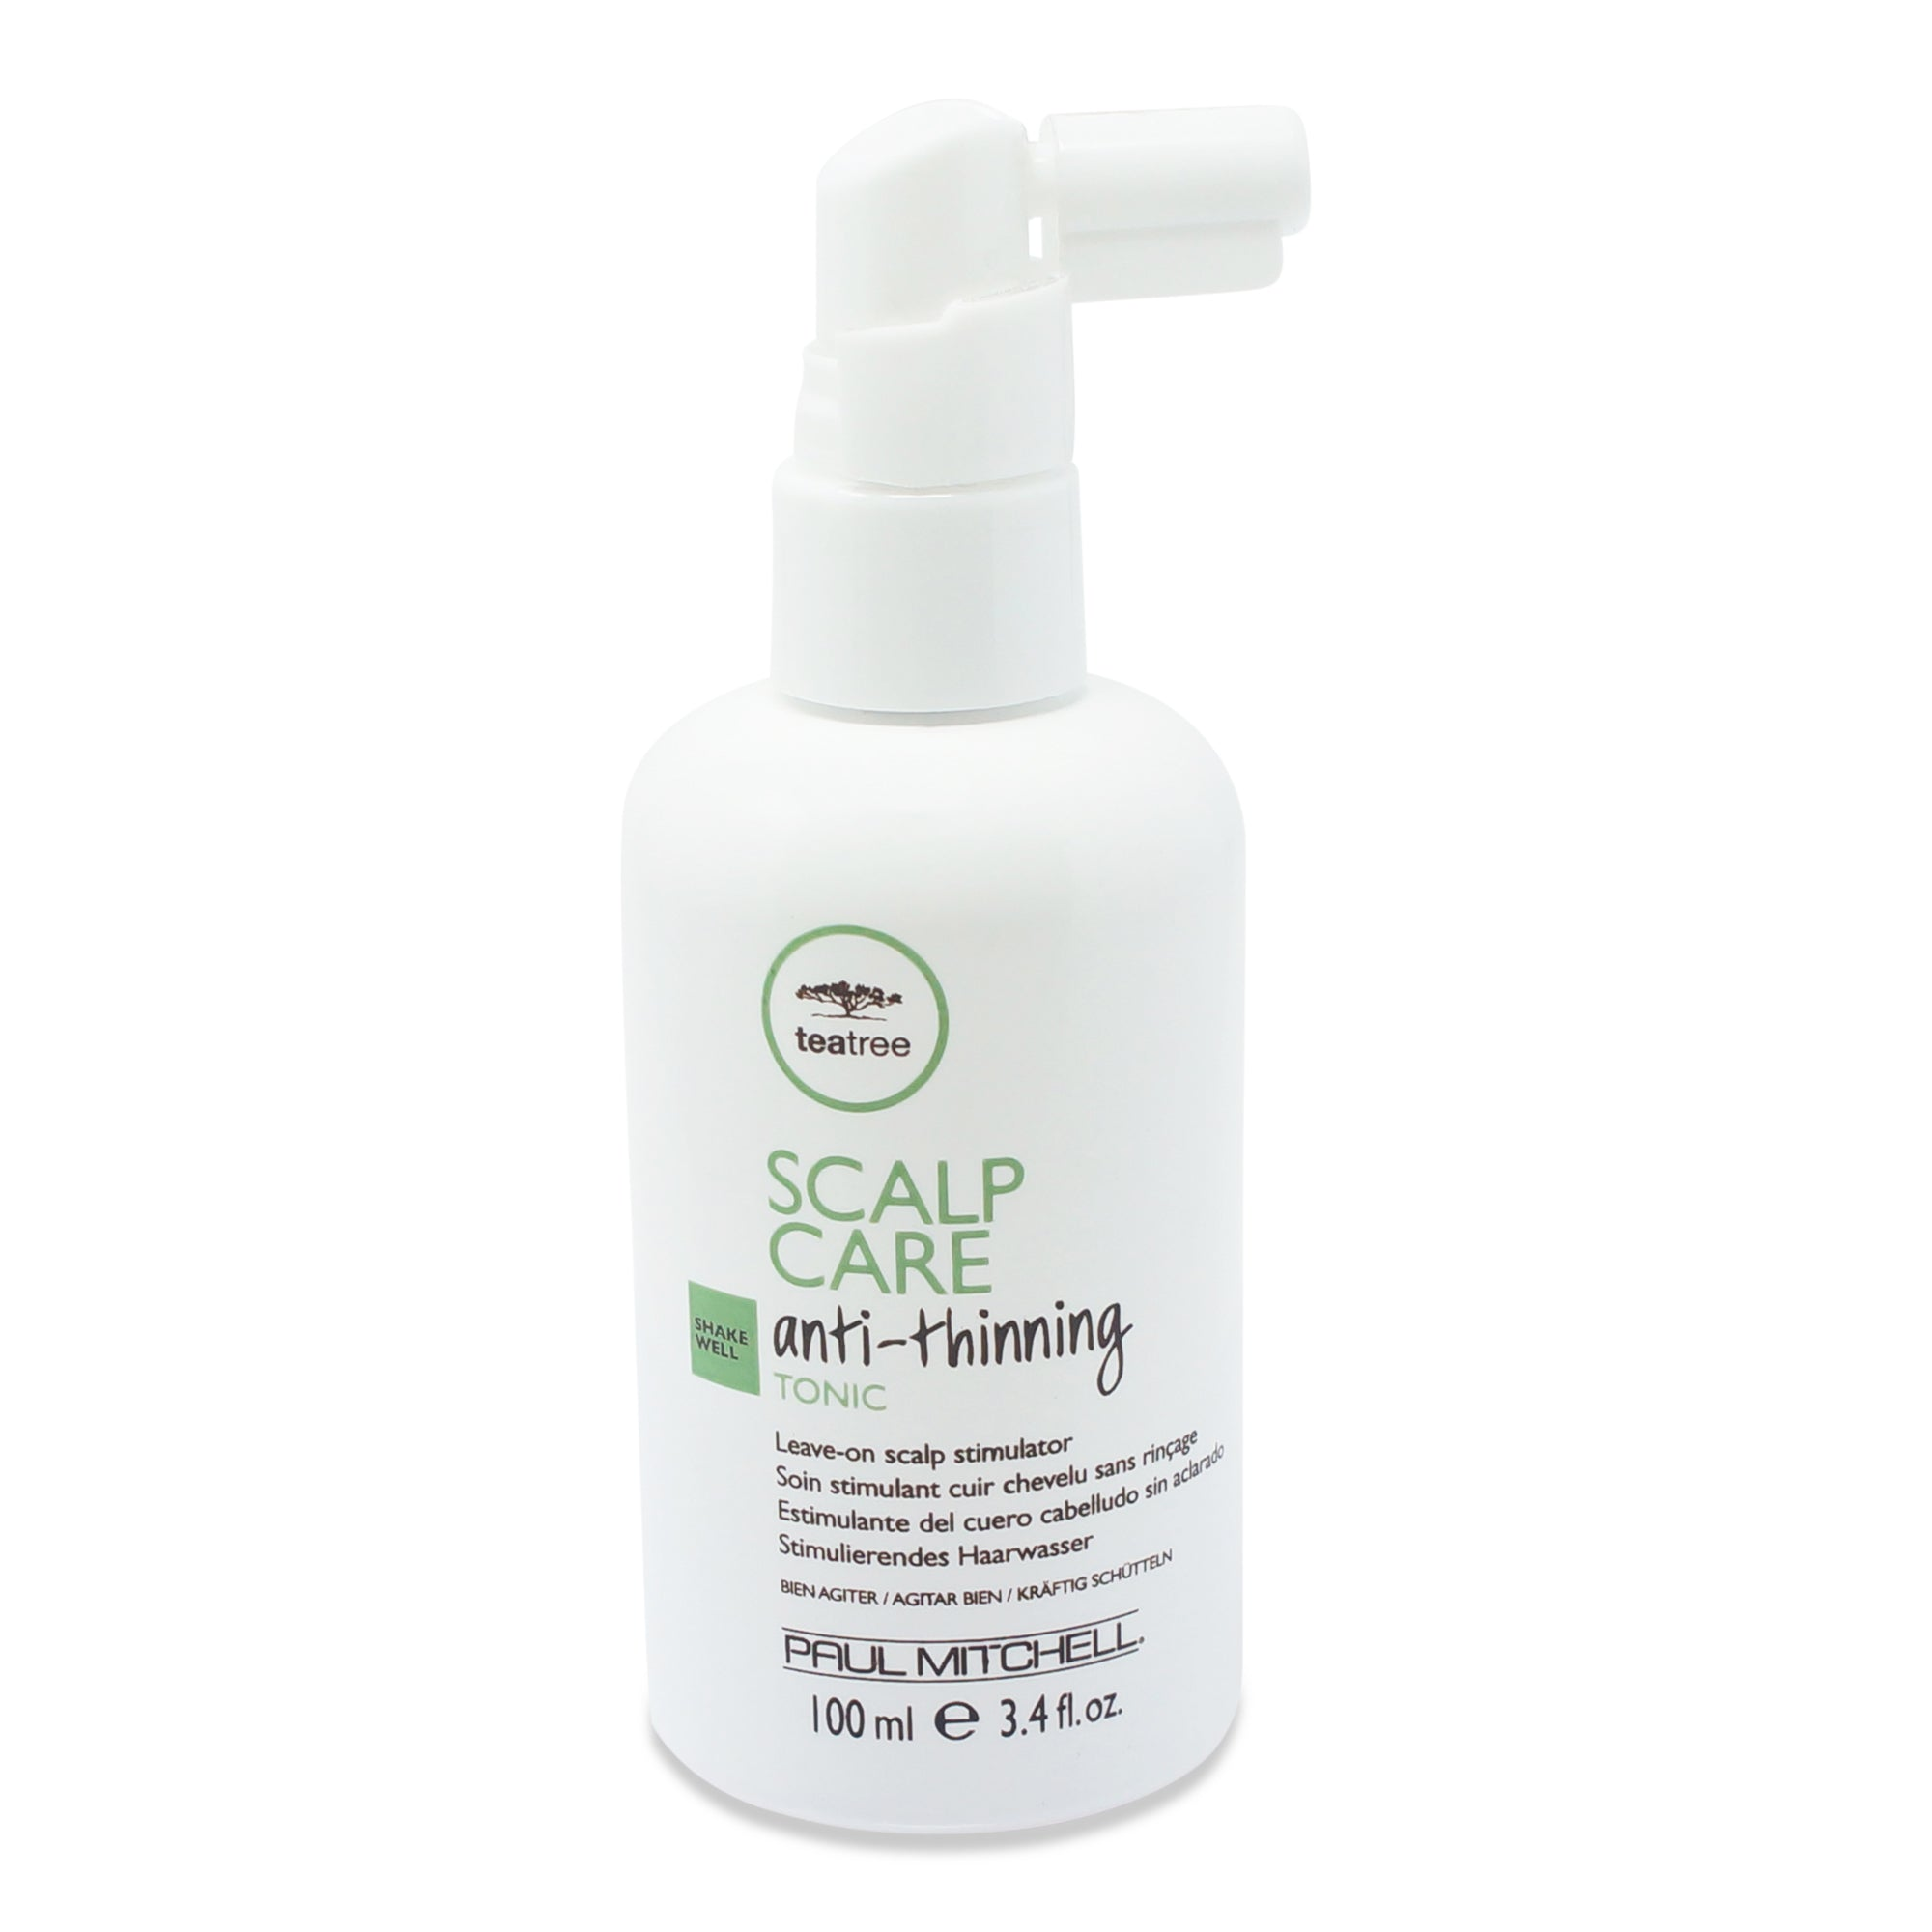 PAUL MITCHELL ~ TEA TREE ~ SCALP CARE ANTI-THINNING TONIC ~ 100 ML / 3.4 OZ